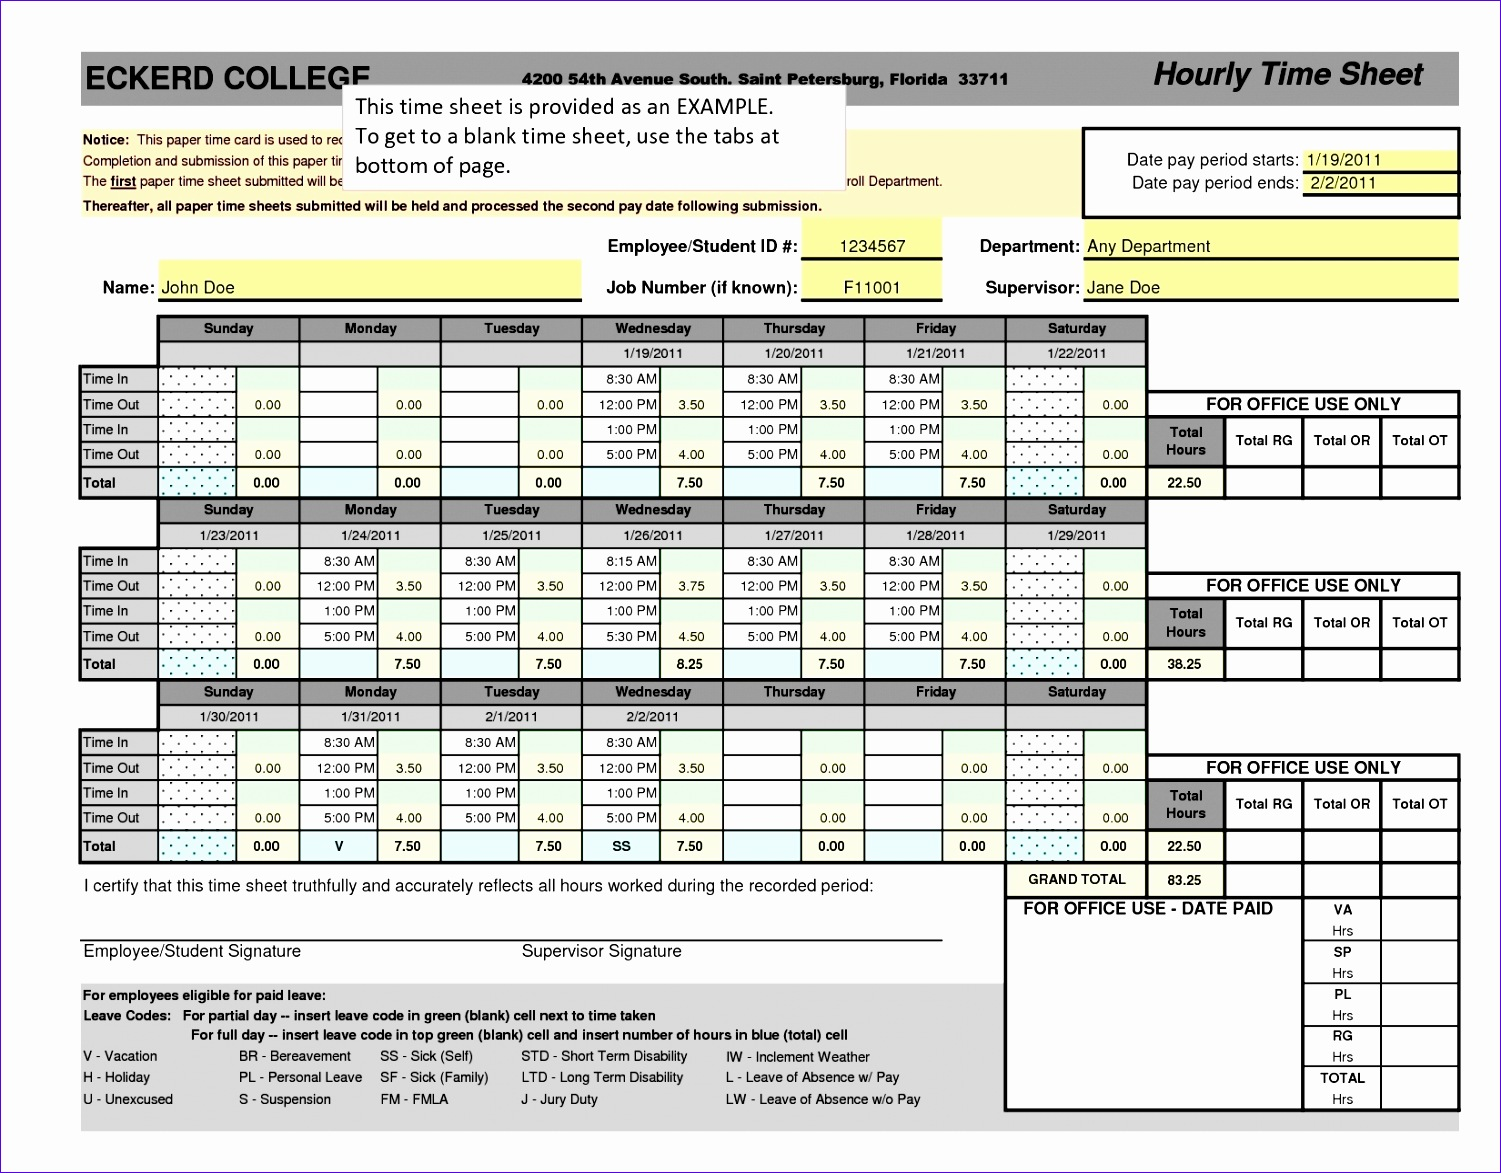 excel timesheet template with formulas best business template within excel timesheet template with formulas